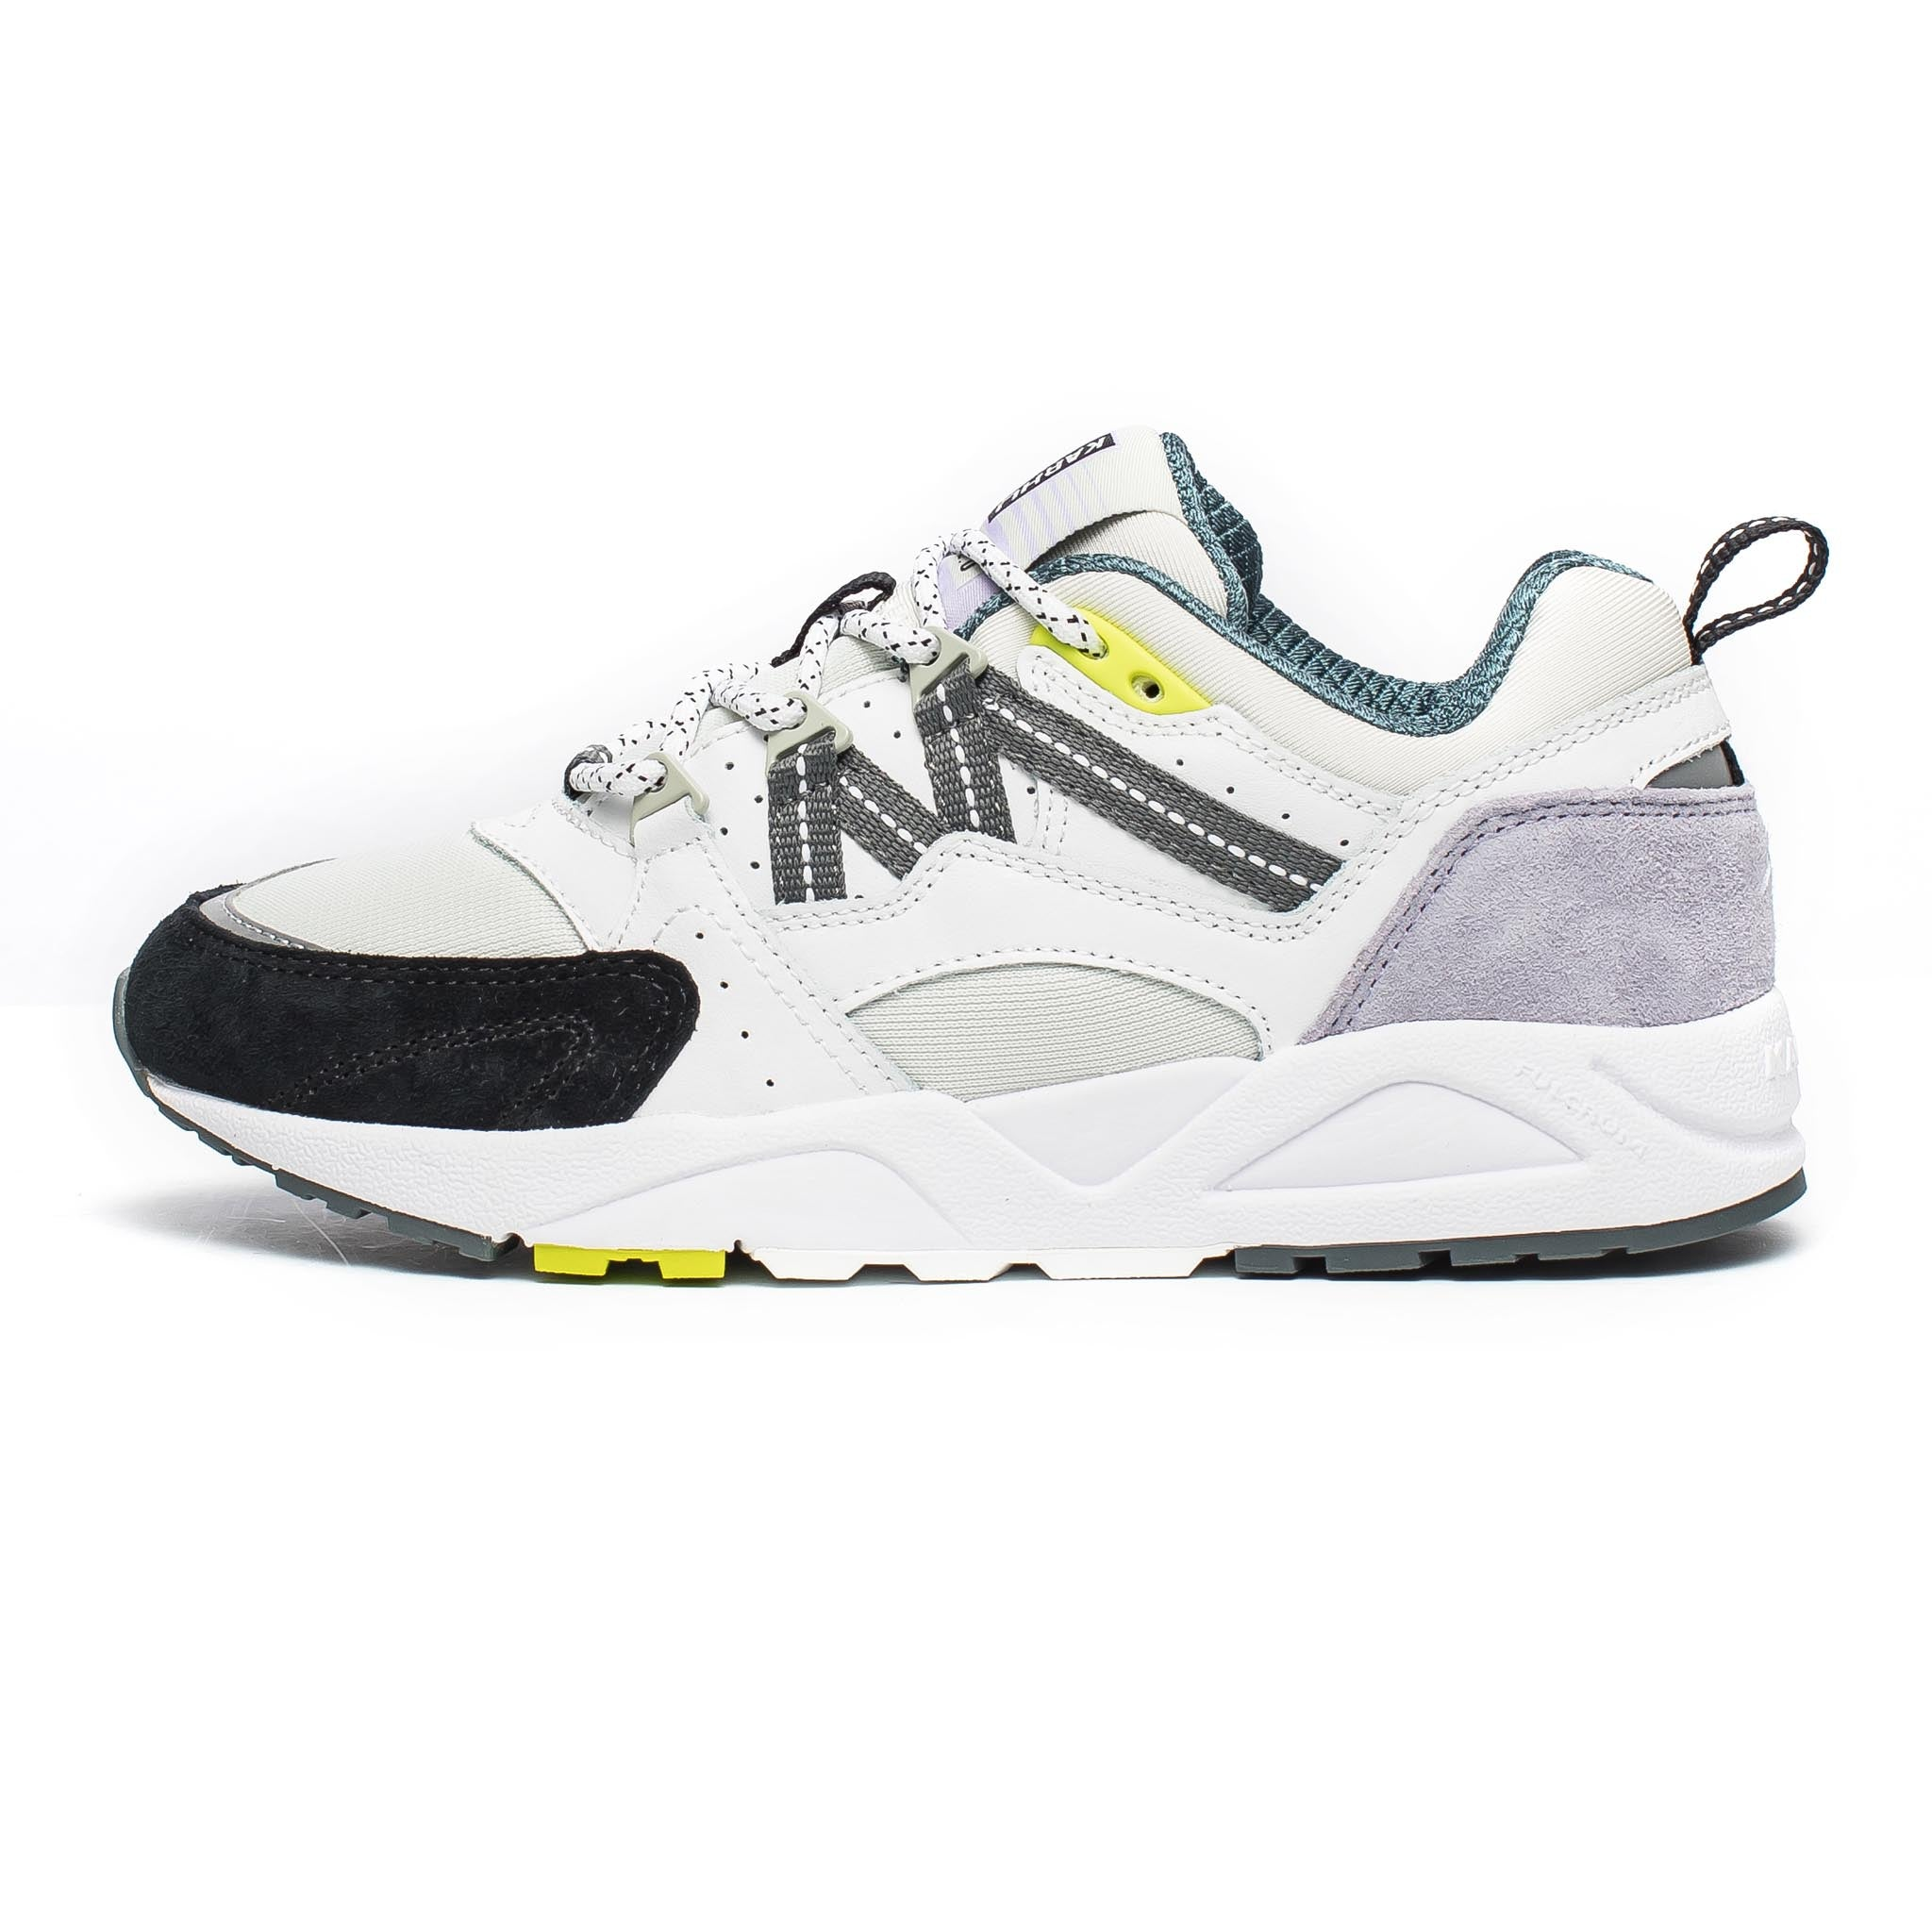 Karhu Fusion 2.0 'Hockey Pack' Jet Black/White